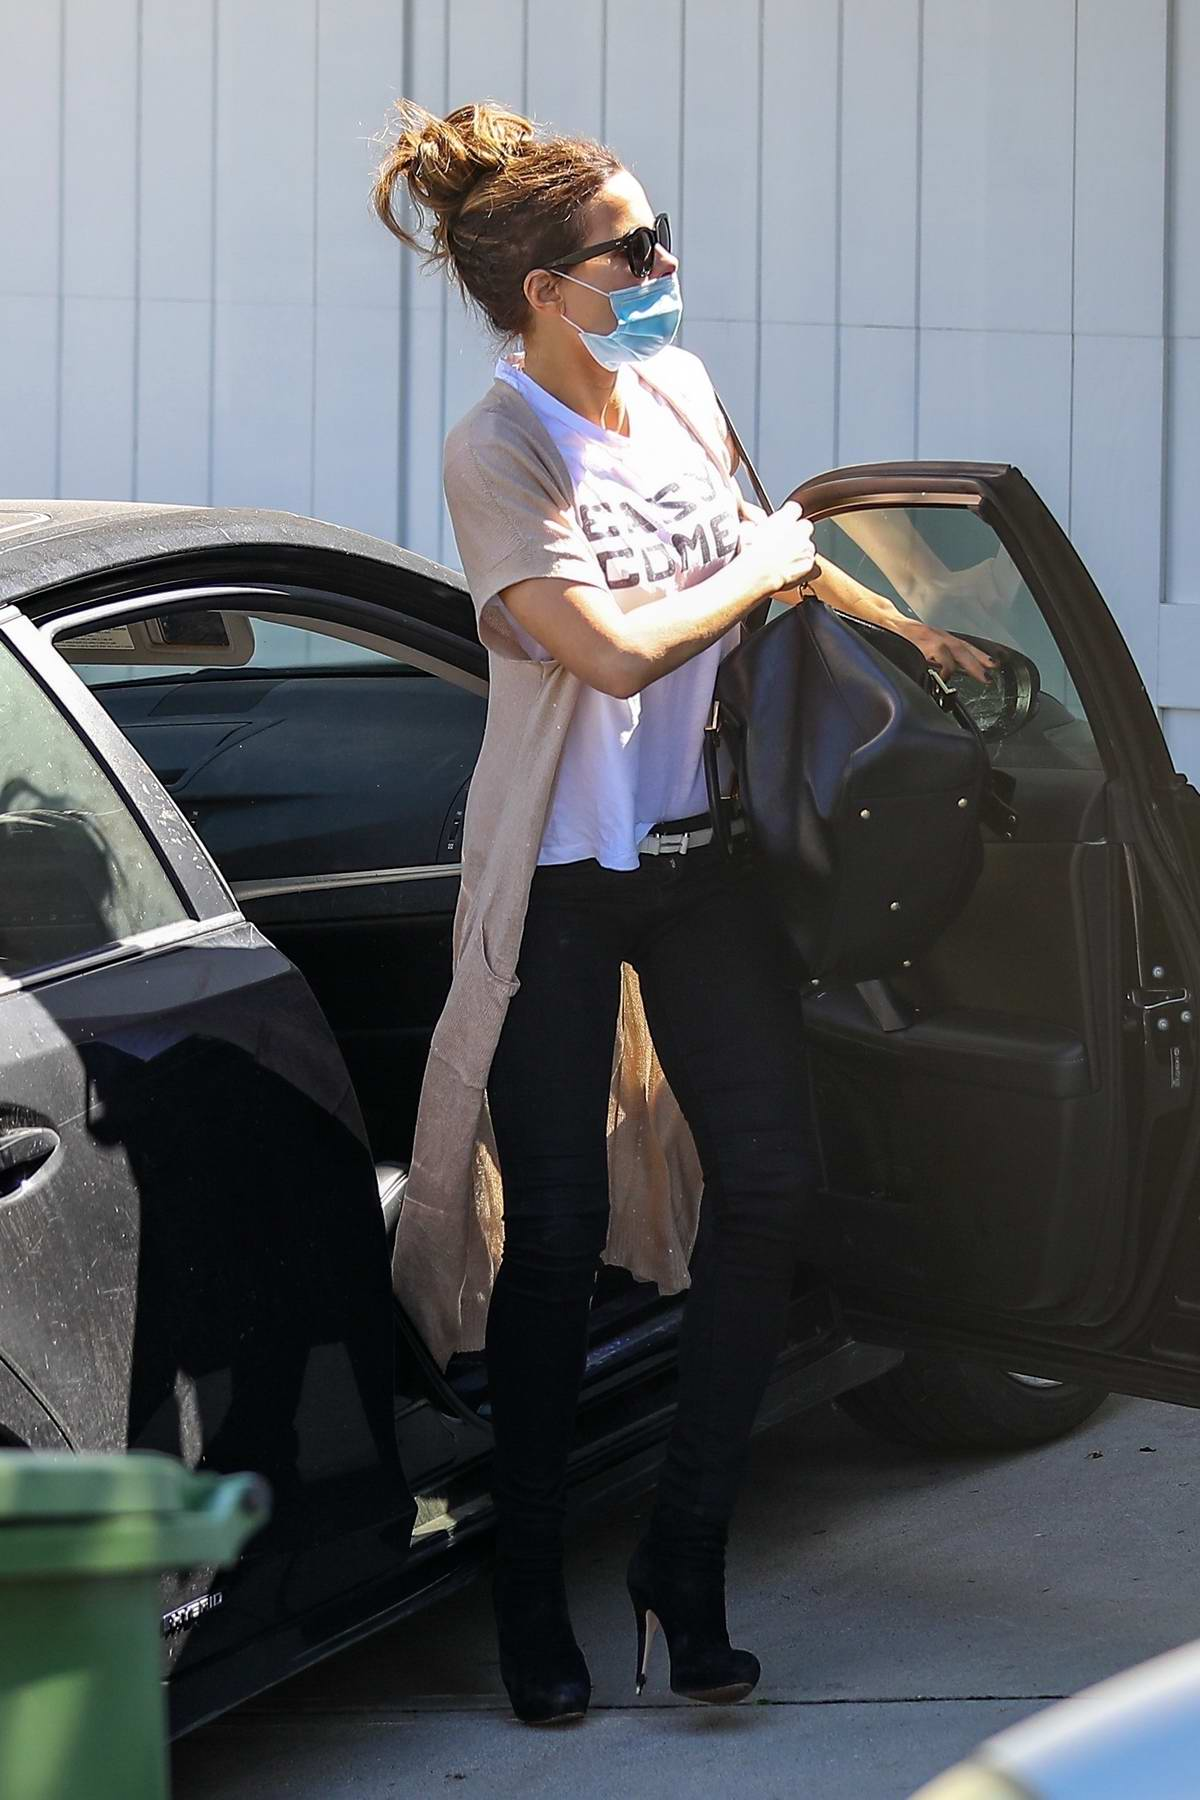 Kate Beckinsale seen wearing a mask as she arrives home with a girlfriend in Pacific Palisades, California